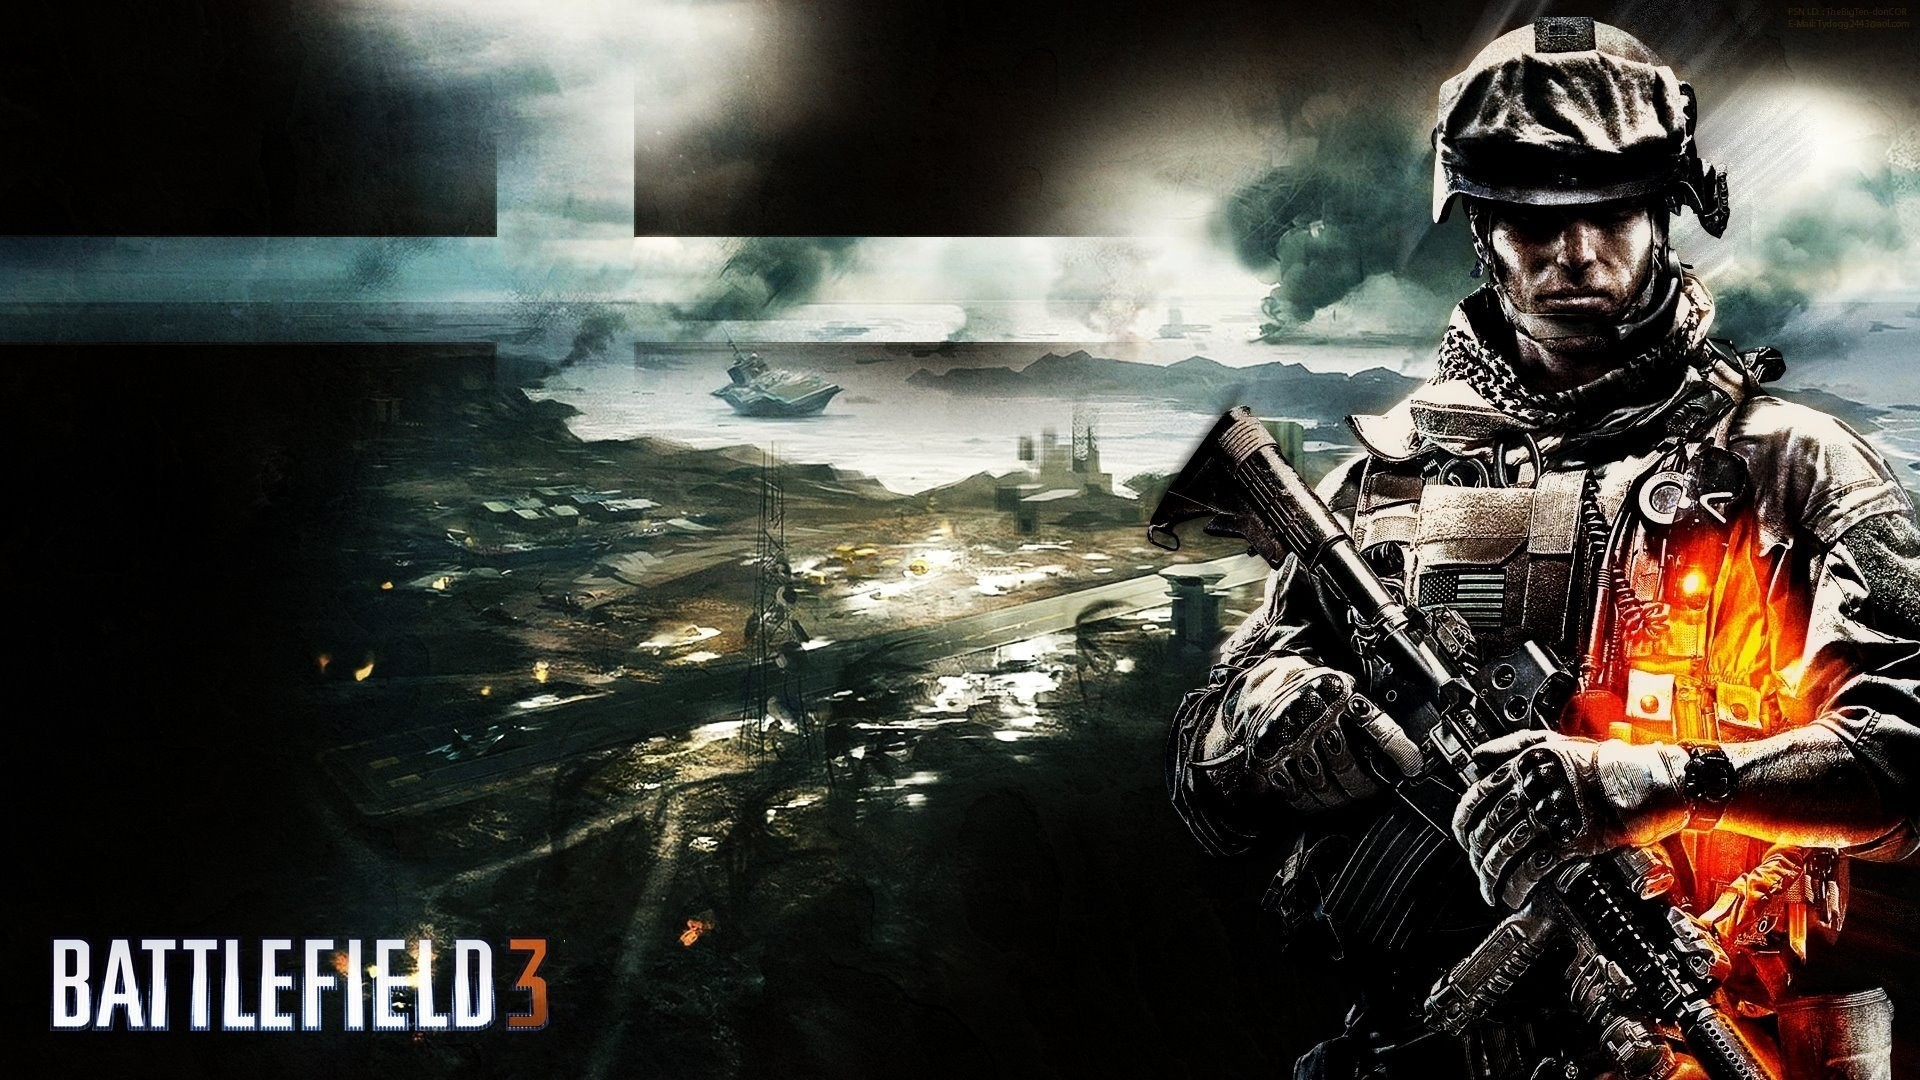 Res: 1920x1080, ... Battlefield 3 Wallpapers HD #36MQYM6 () ...